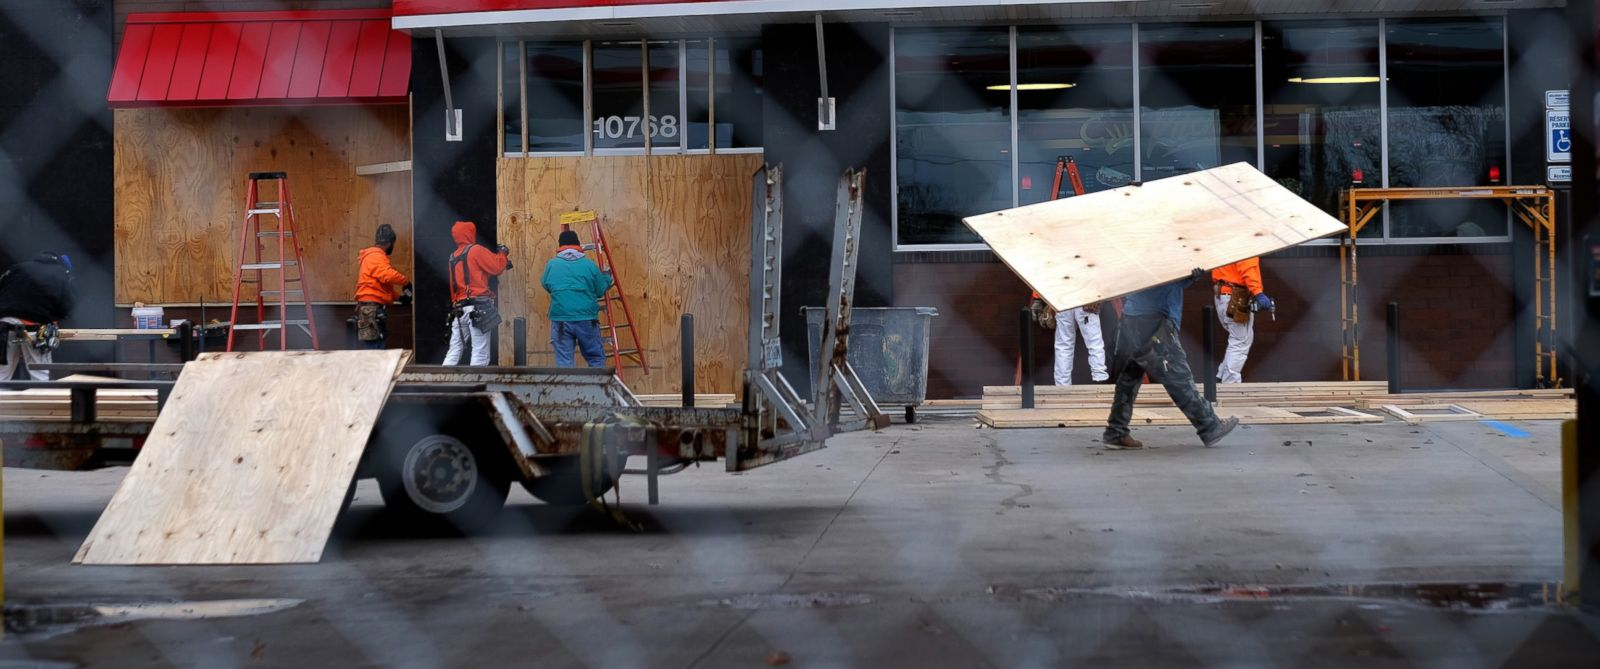 PHOTO: Workers board up windows and install fencing around a gas station in Ferguson Mo., Nov. 24, 2014 in anticipation of an announcement on the grand jury decision on whether to indict a white police officer for the fatal shooting of a black teenager.